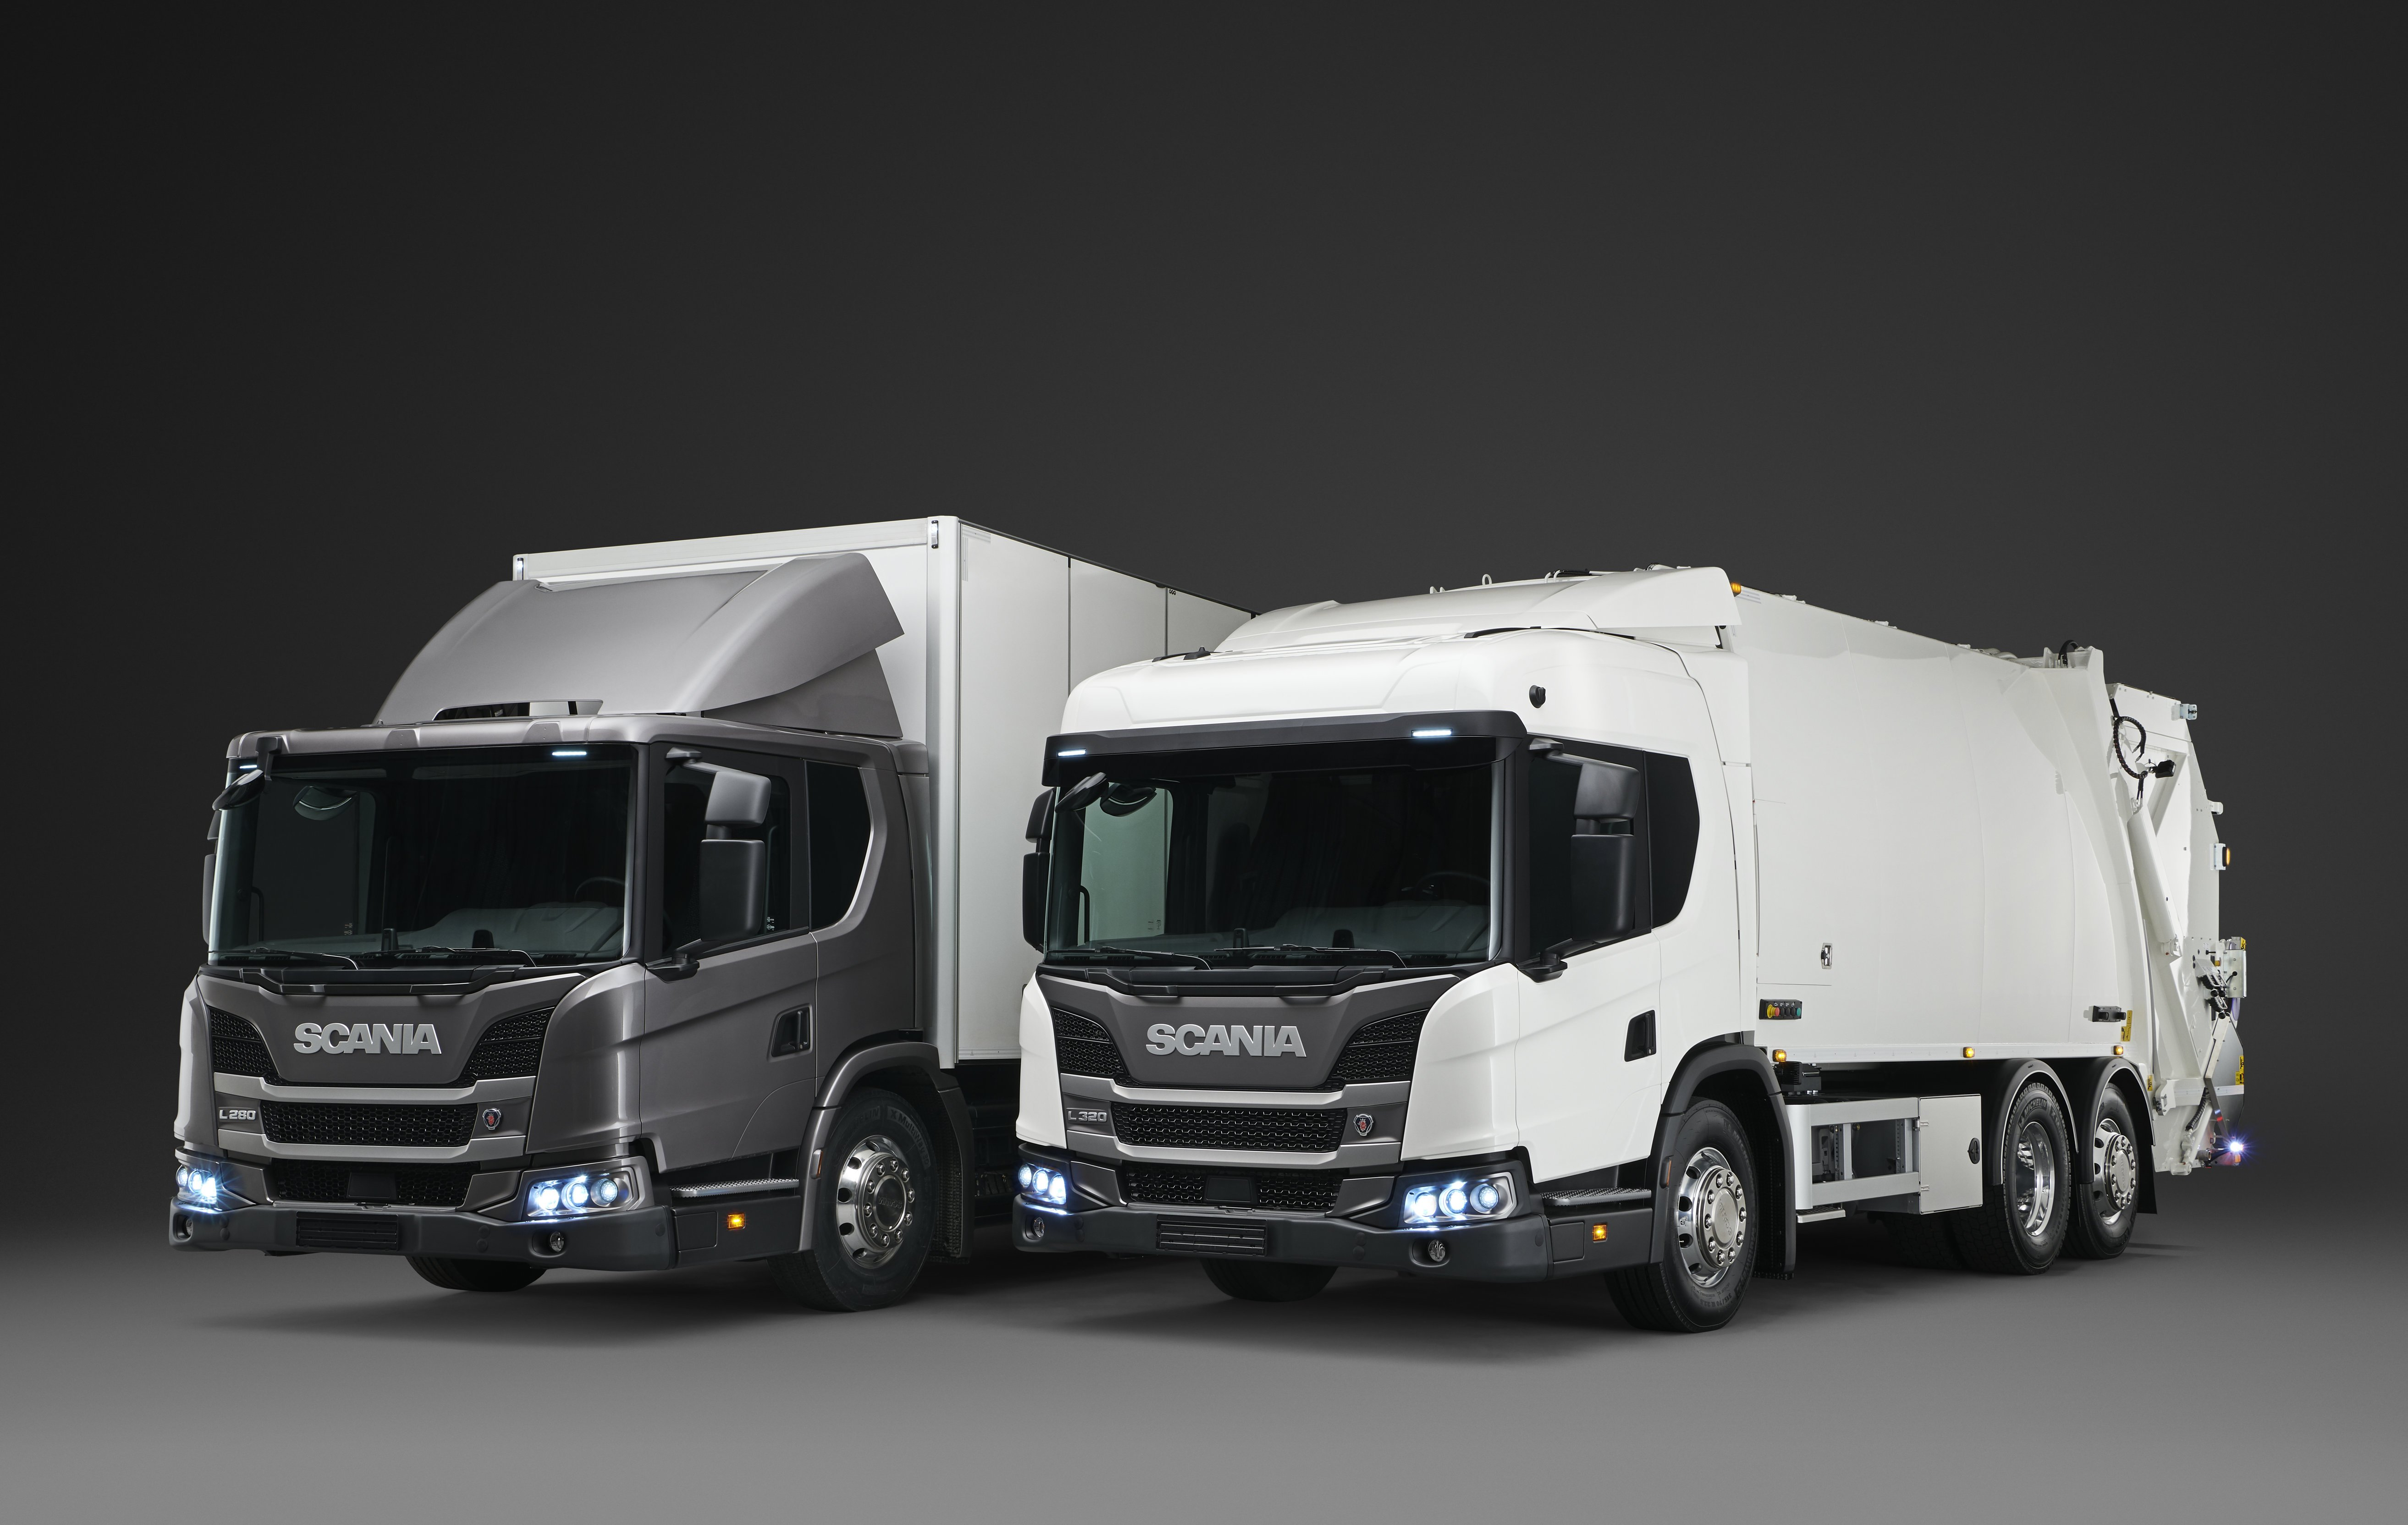 2017 Trucks >> Scania's new L-Series meets the Urban Challenges - Fleet Transport